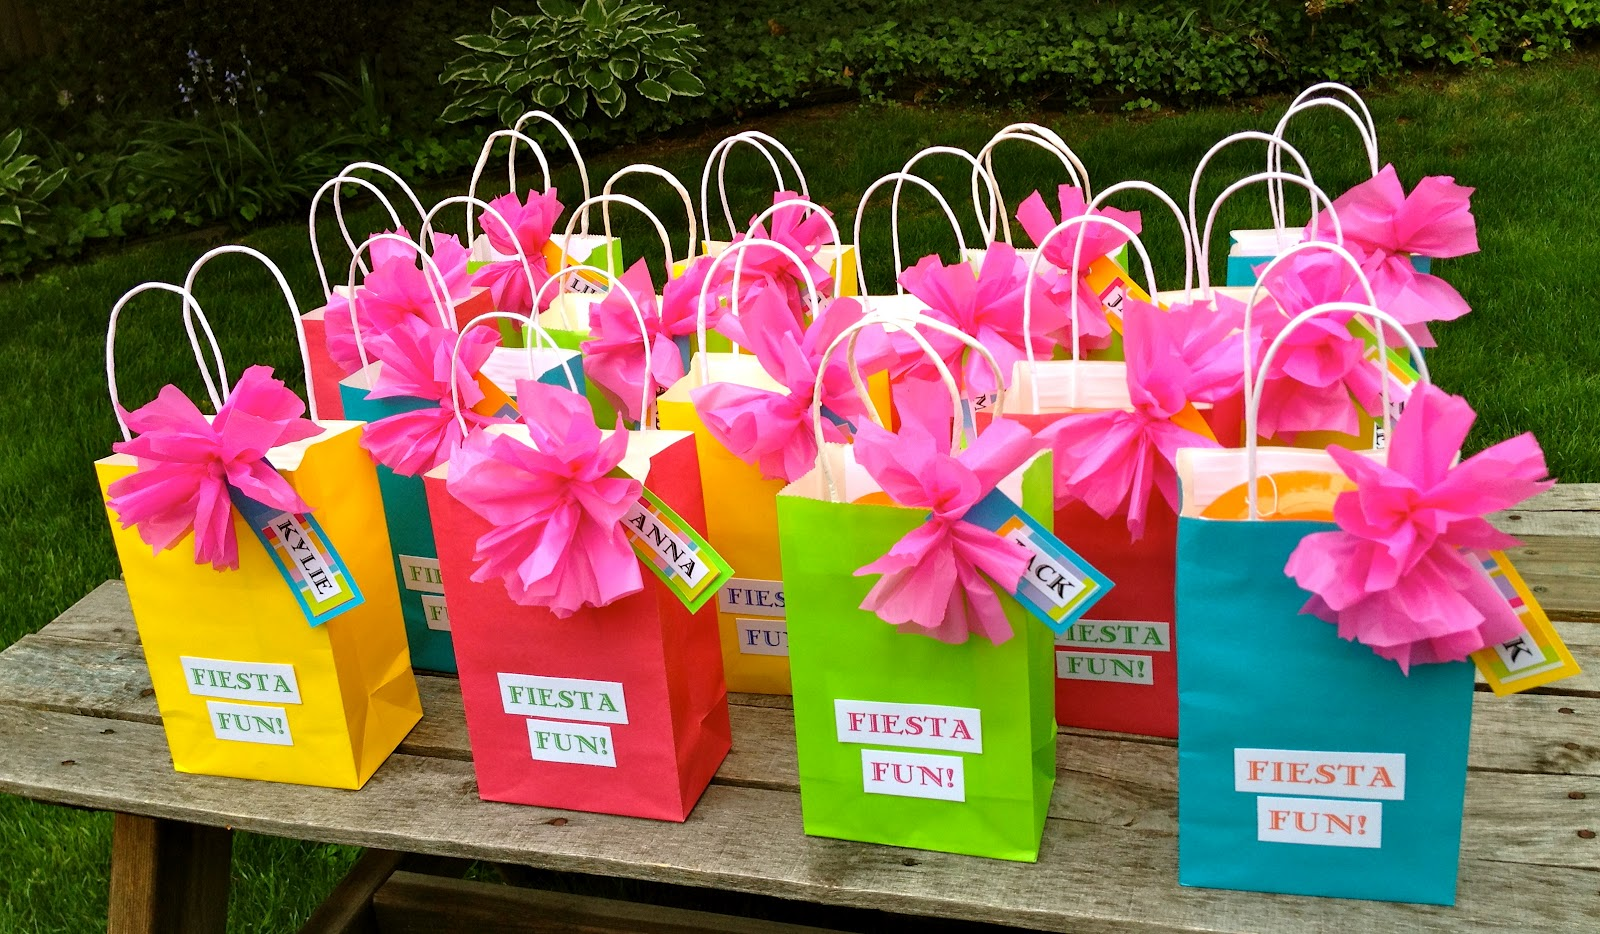 Fiesta table decorations ideas - Displaying 17 Images For Diy Fiesta Party Decorations